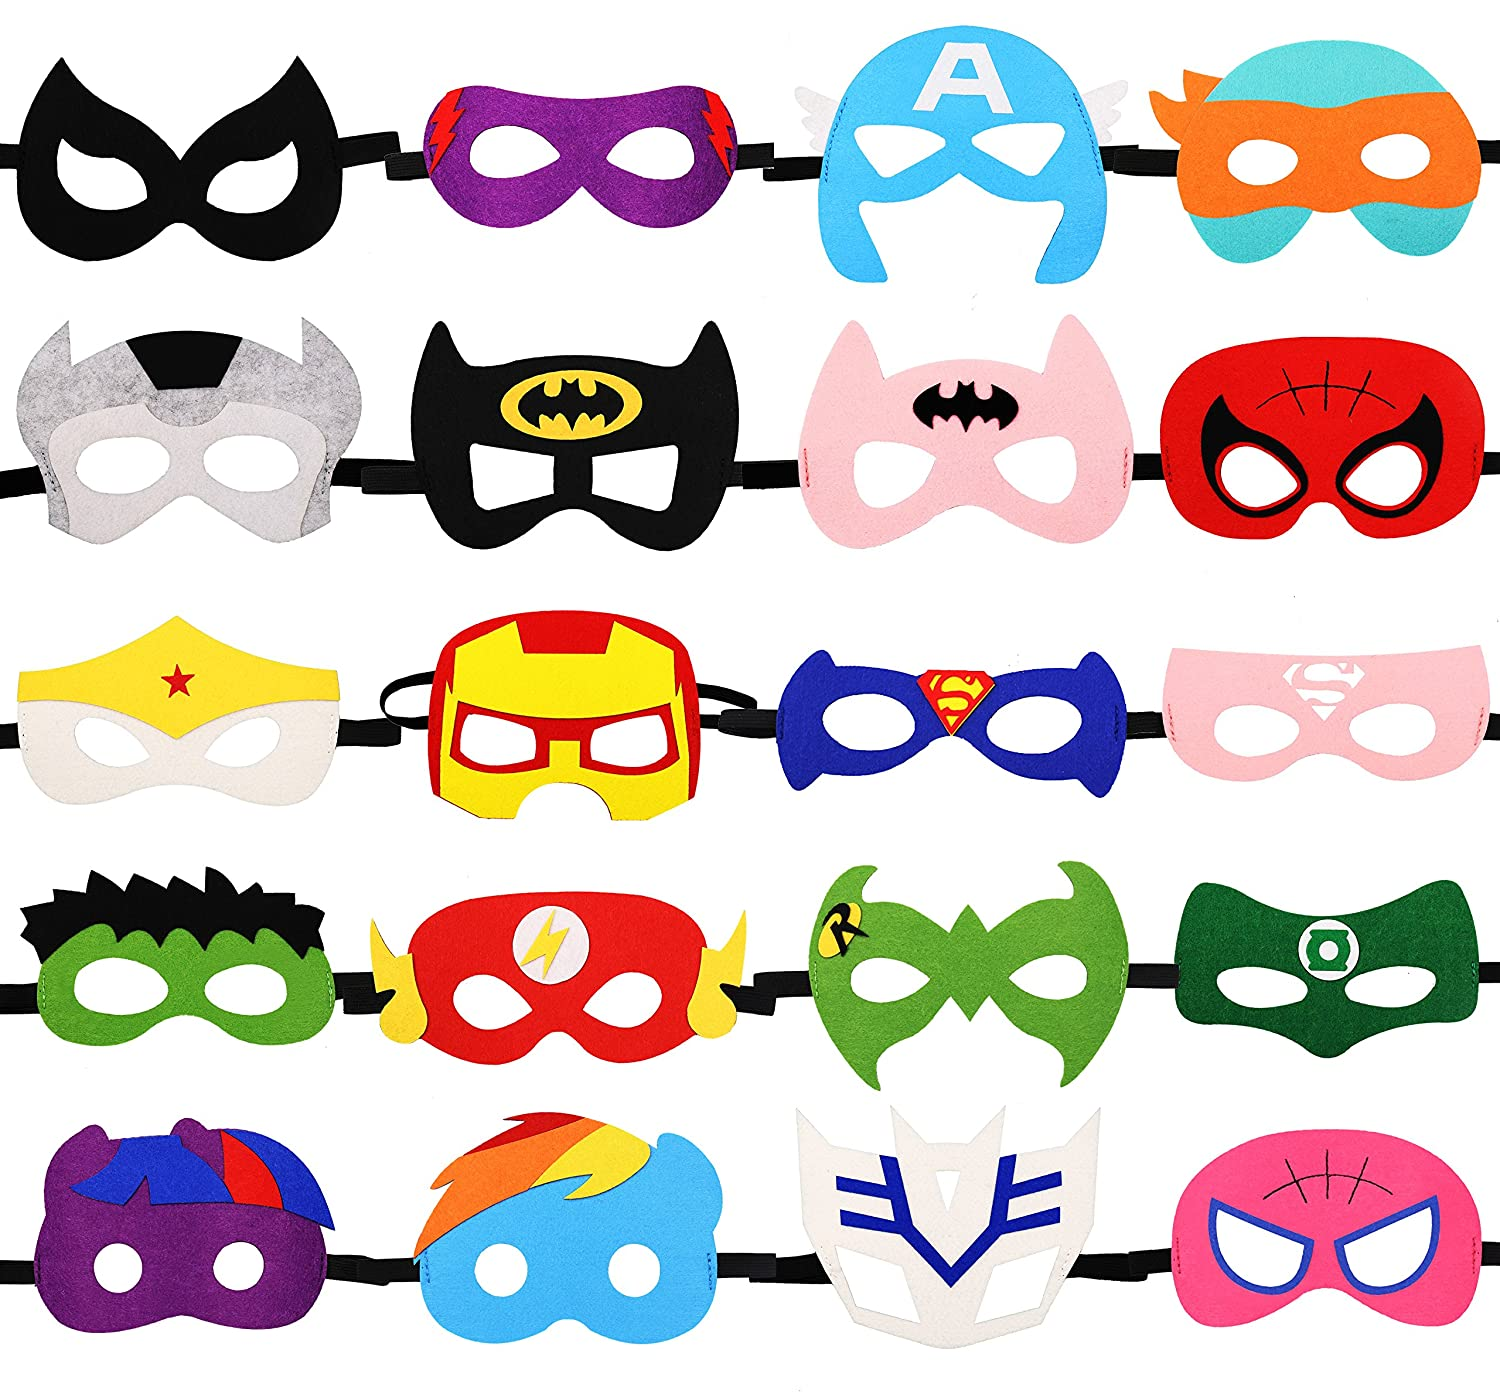 HAMMERHIT Superhero Felt Masks 20 pcs Cosplay Character Soft Mask Party Favor Supplies for Kids Boys or Girls